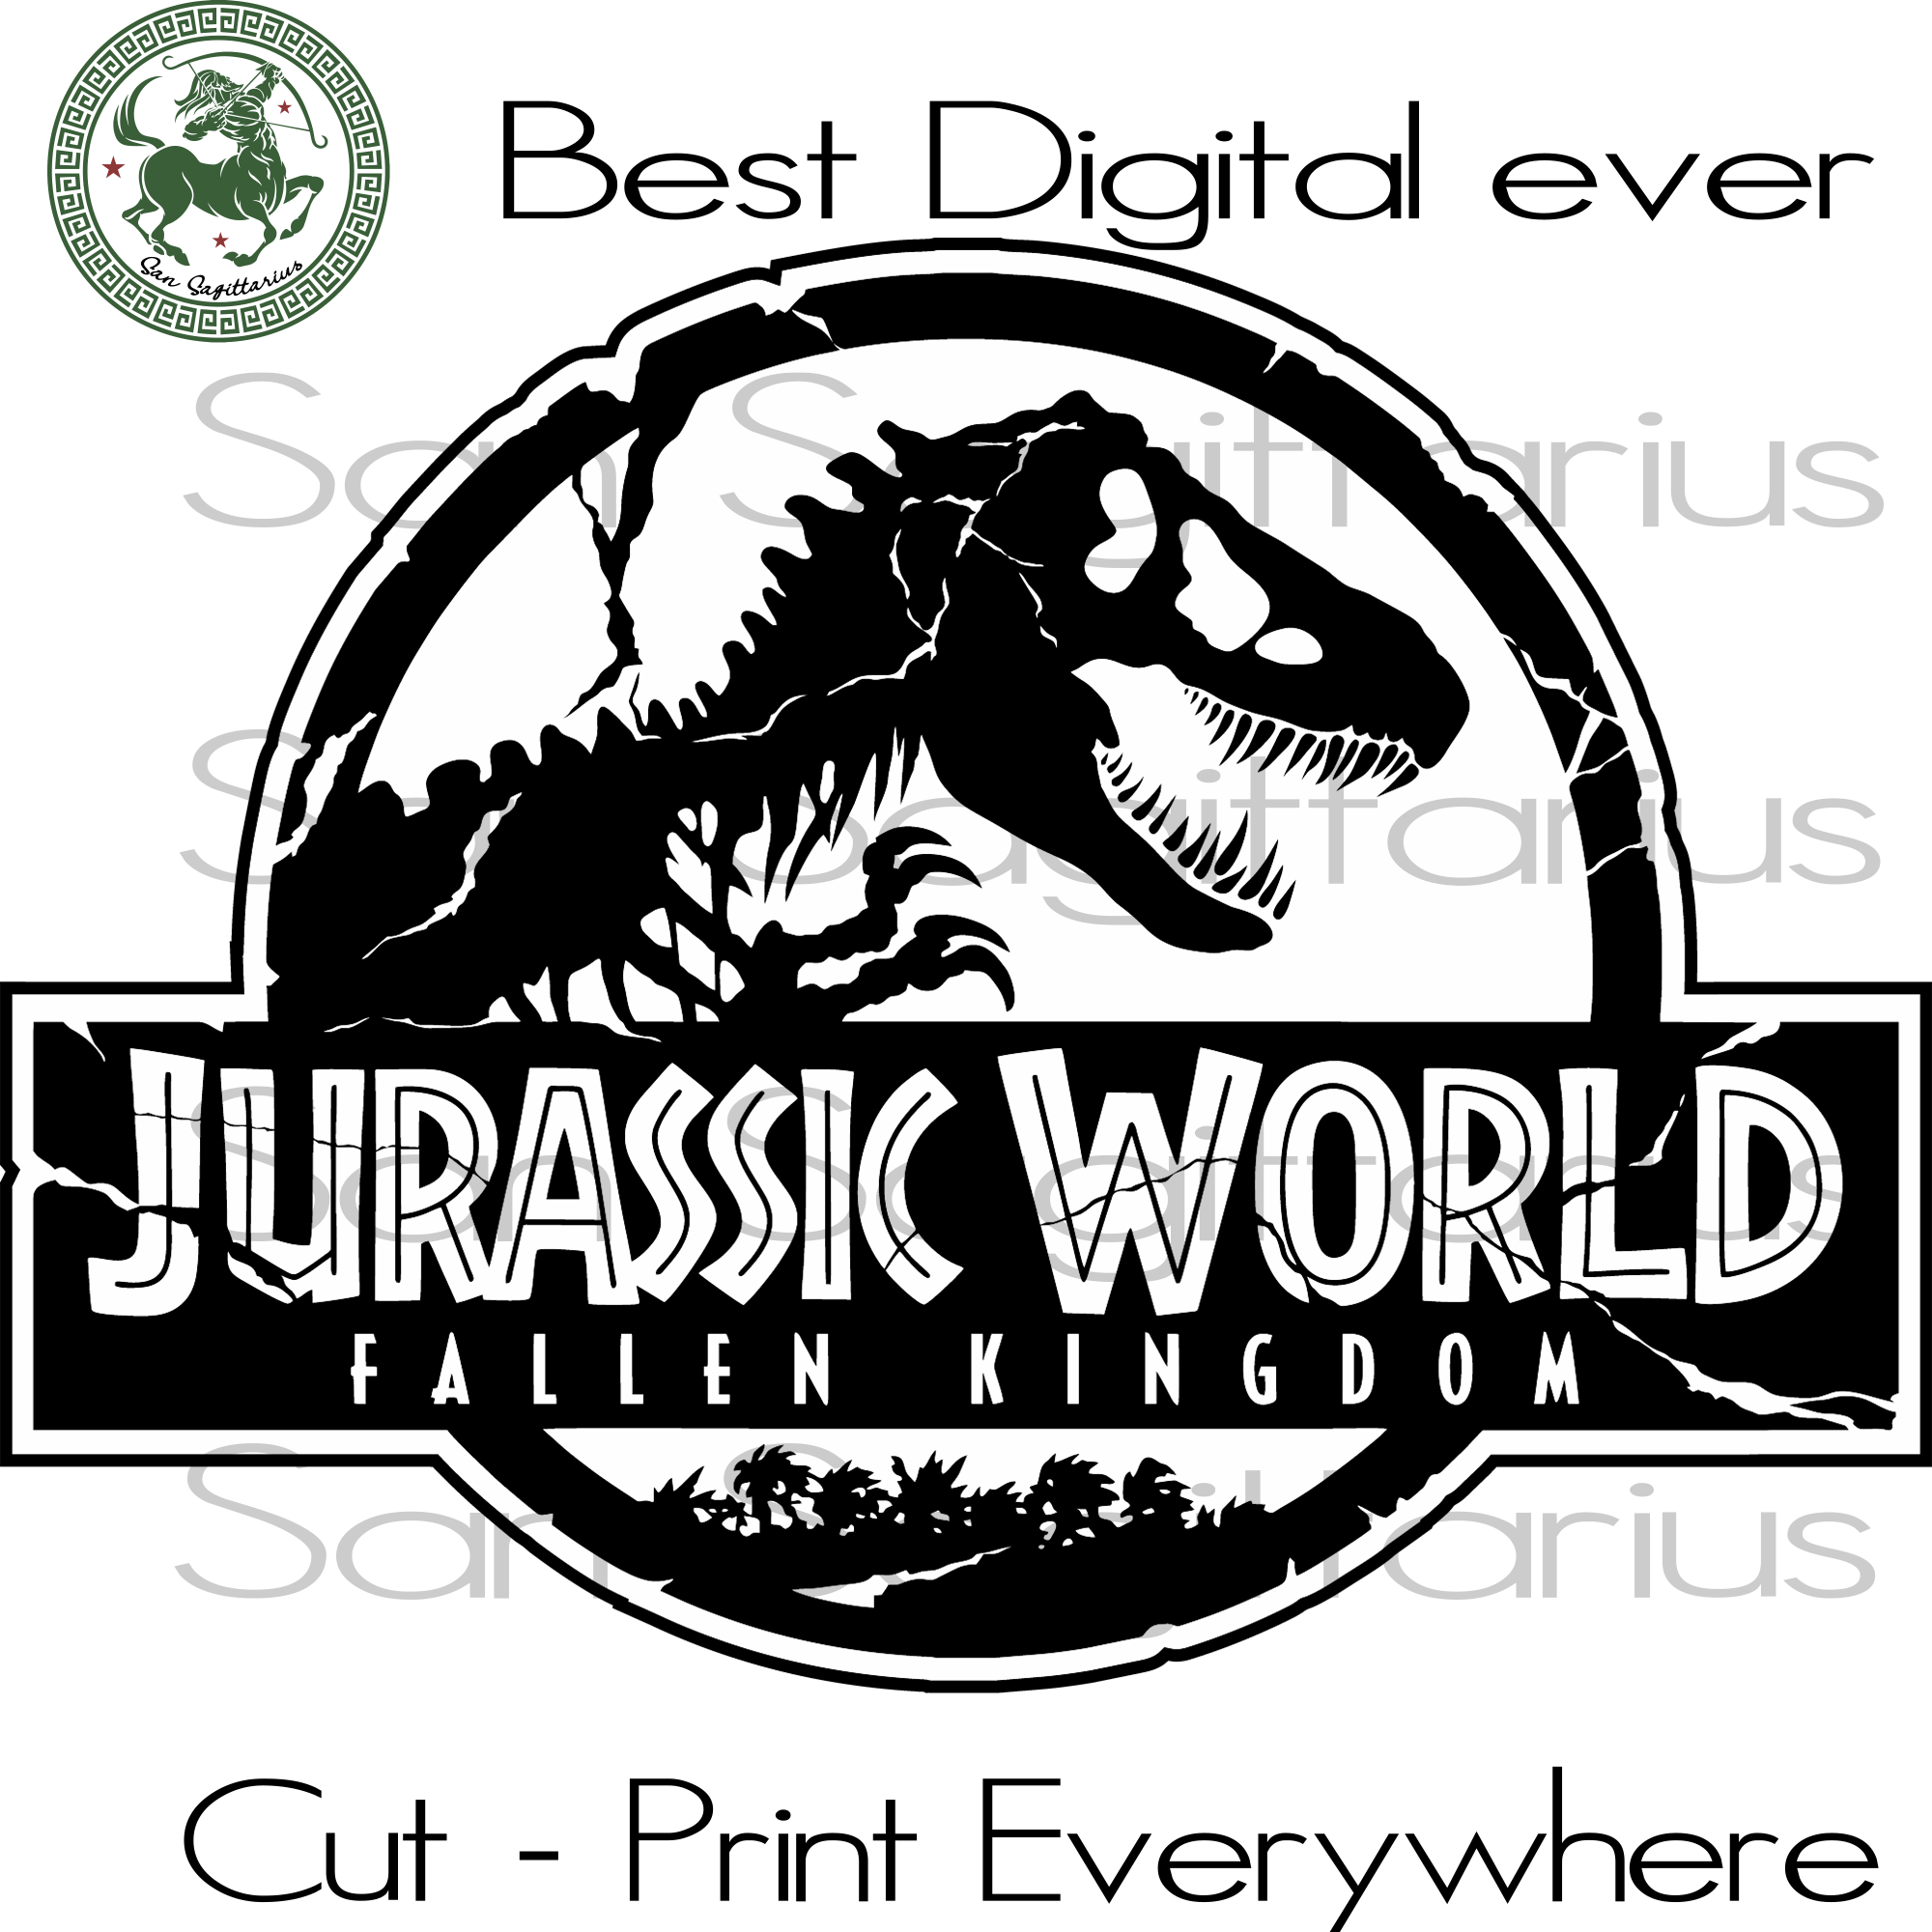 Jurassic World Fallen Kingdom Best Gifts For Kids SVG Files For Cricut Silhouette Instant Download | San Sagittarius